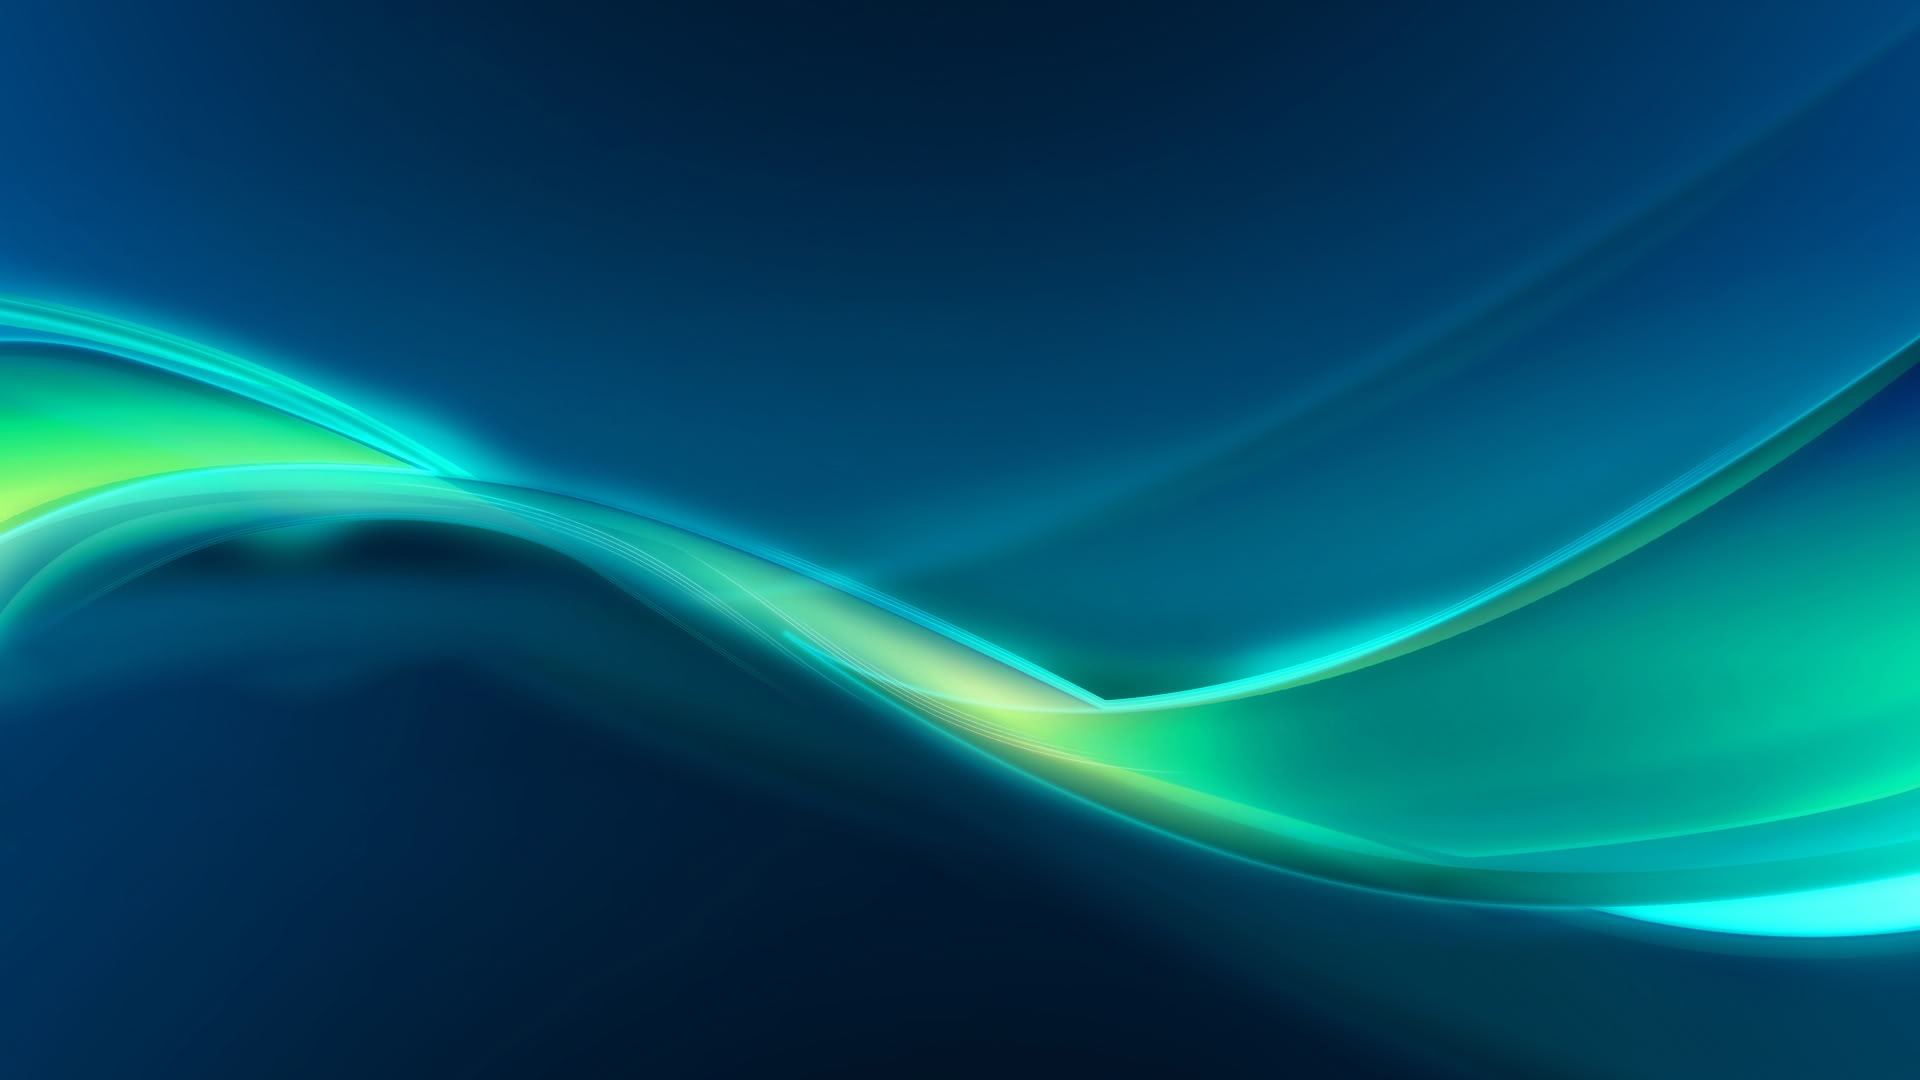 Wavy Green Line Wallpapers